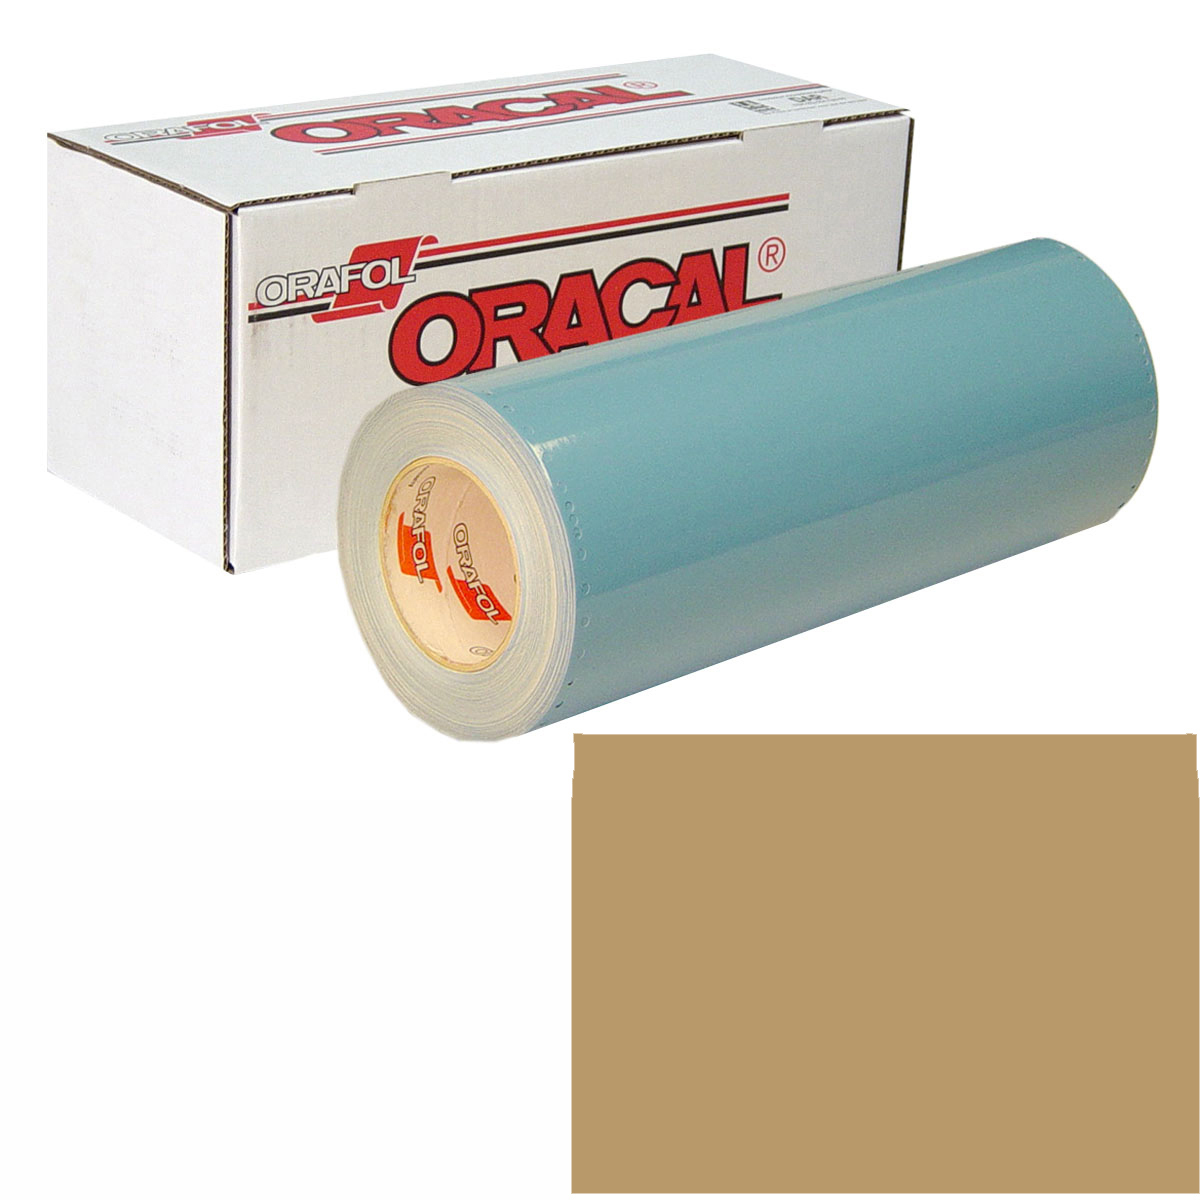 ORACAL 751 15in X 10yd 930 Gold Metallic